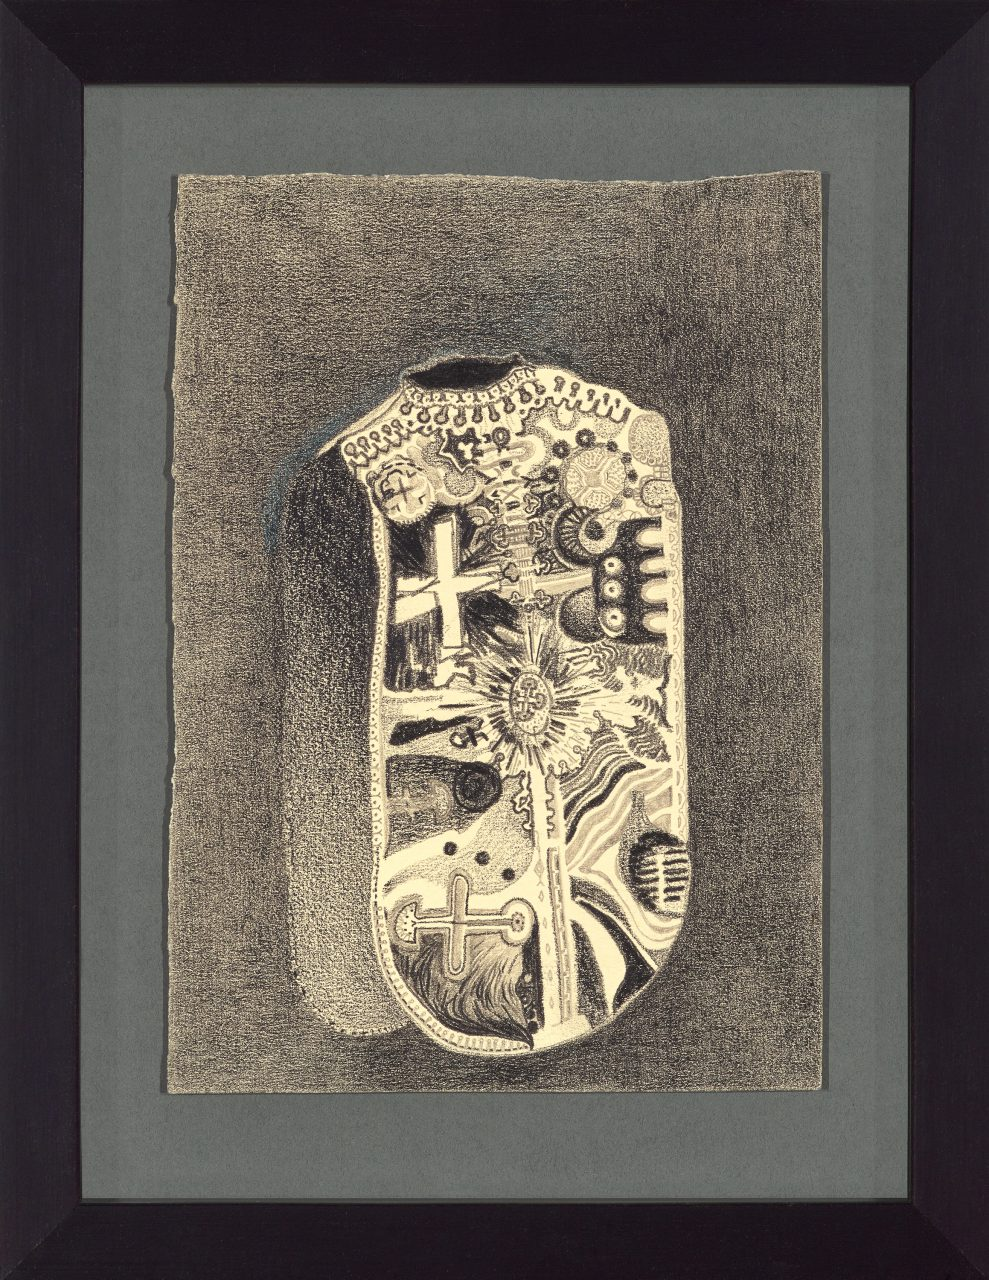 Chasuble #003: 2012 | 21 x 14,5 cm. Pencil on paper